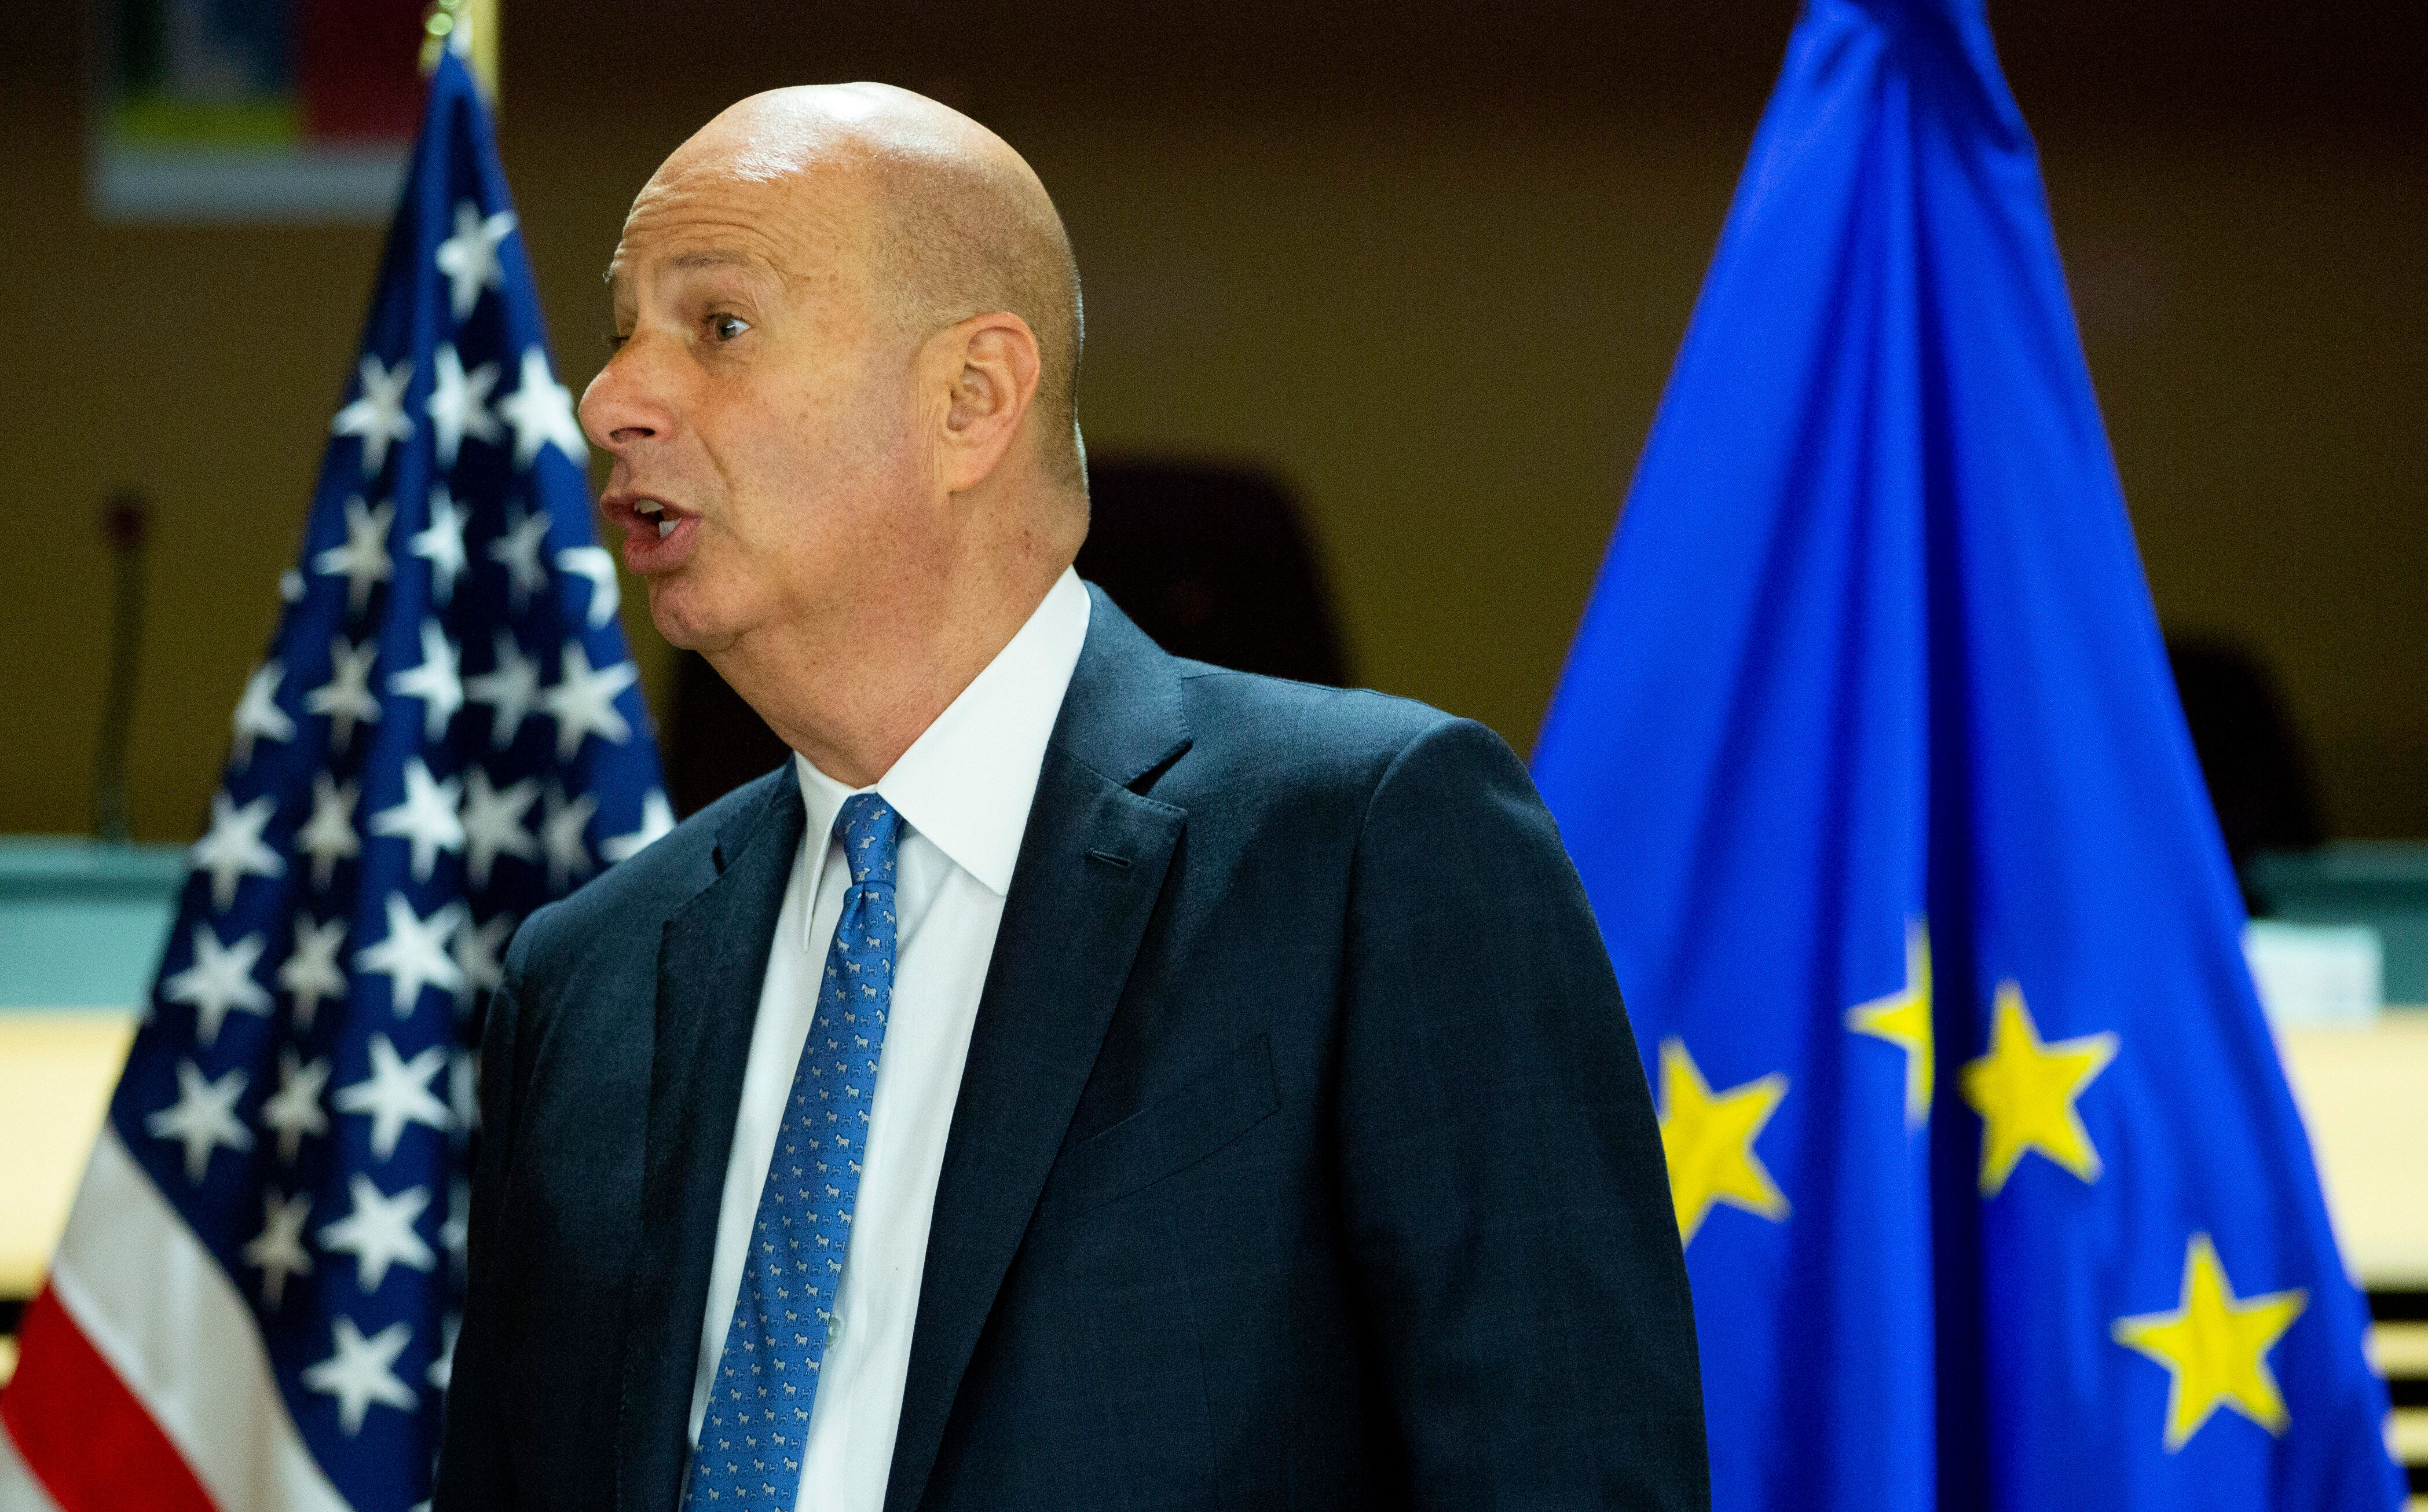 U.S. Ambassador to the European Union Gordon Sondland, here at a forum in Brussels on Oct. 21, has reportedly agreed to testi